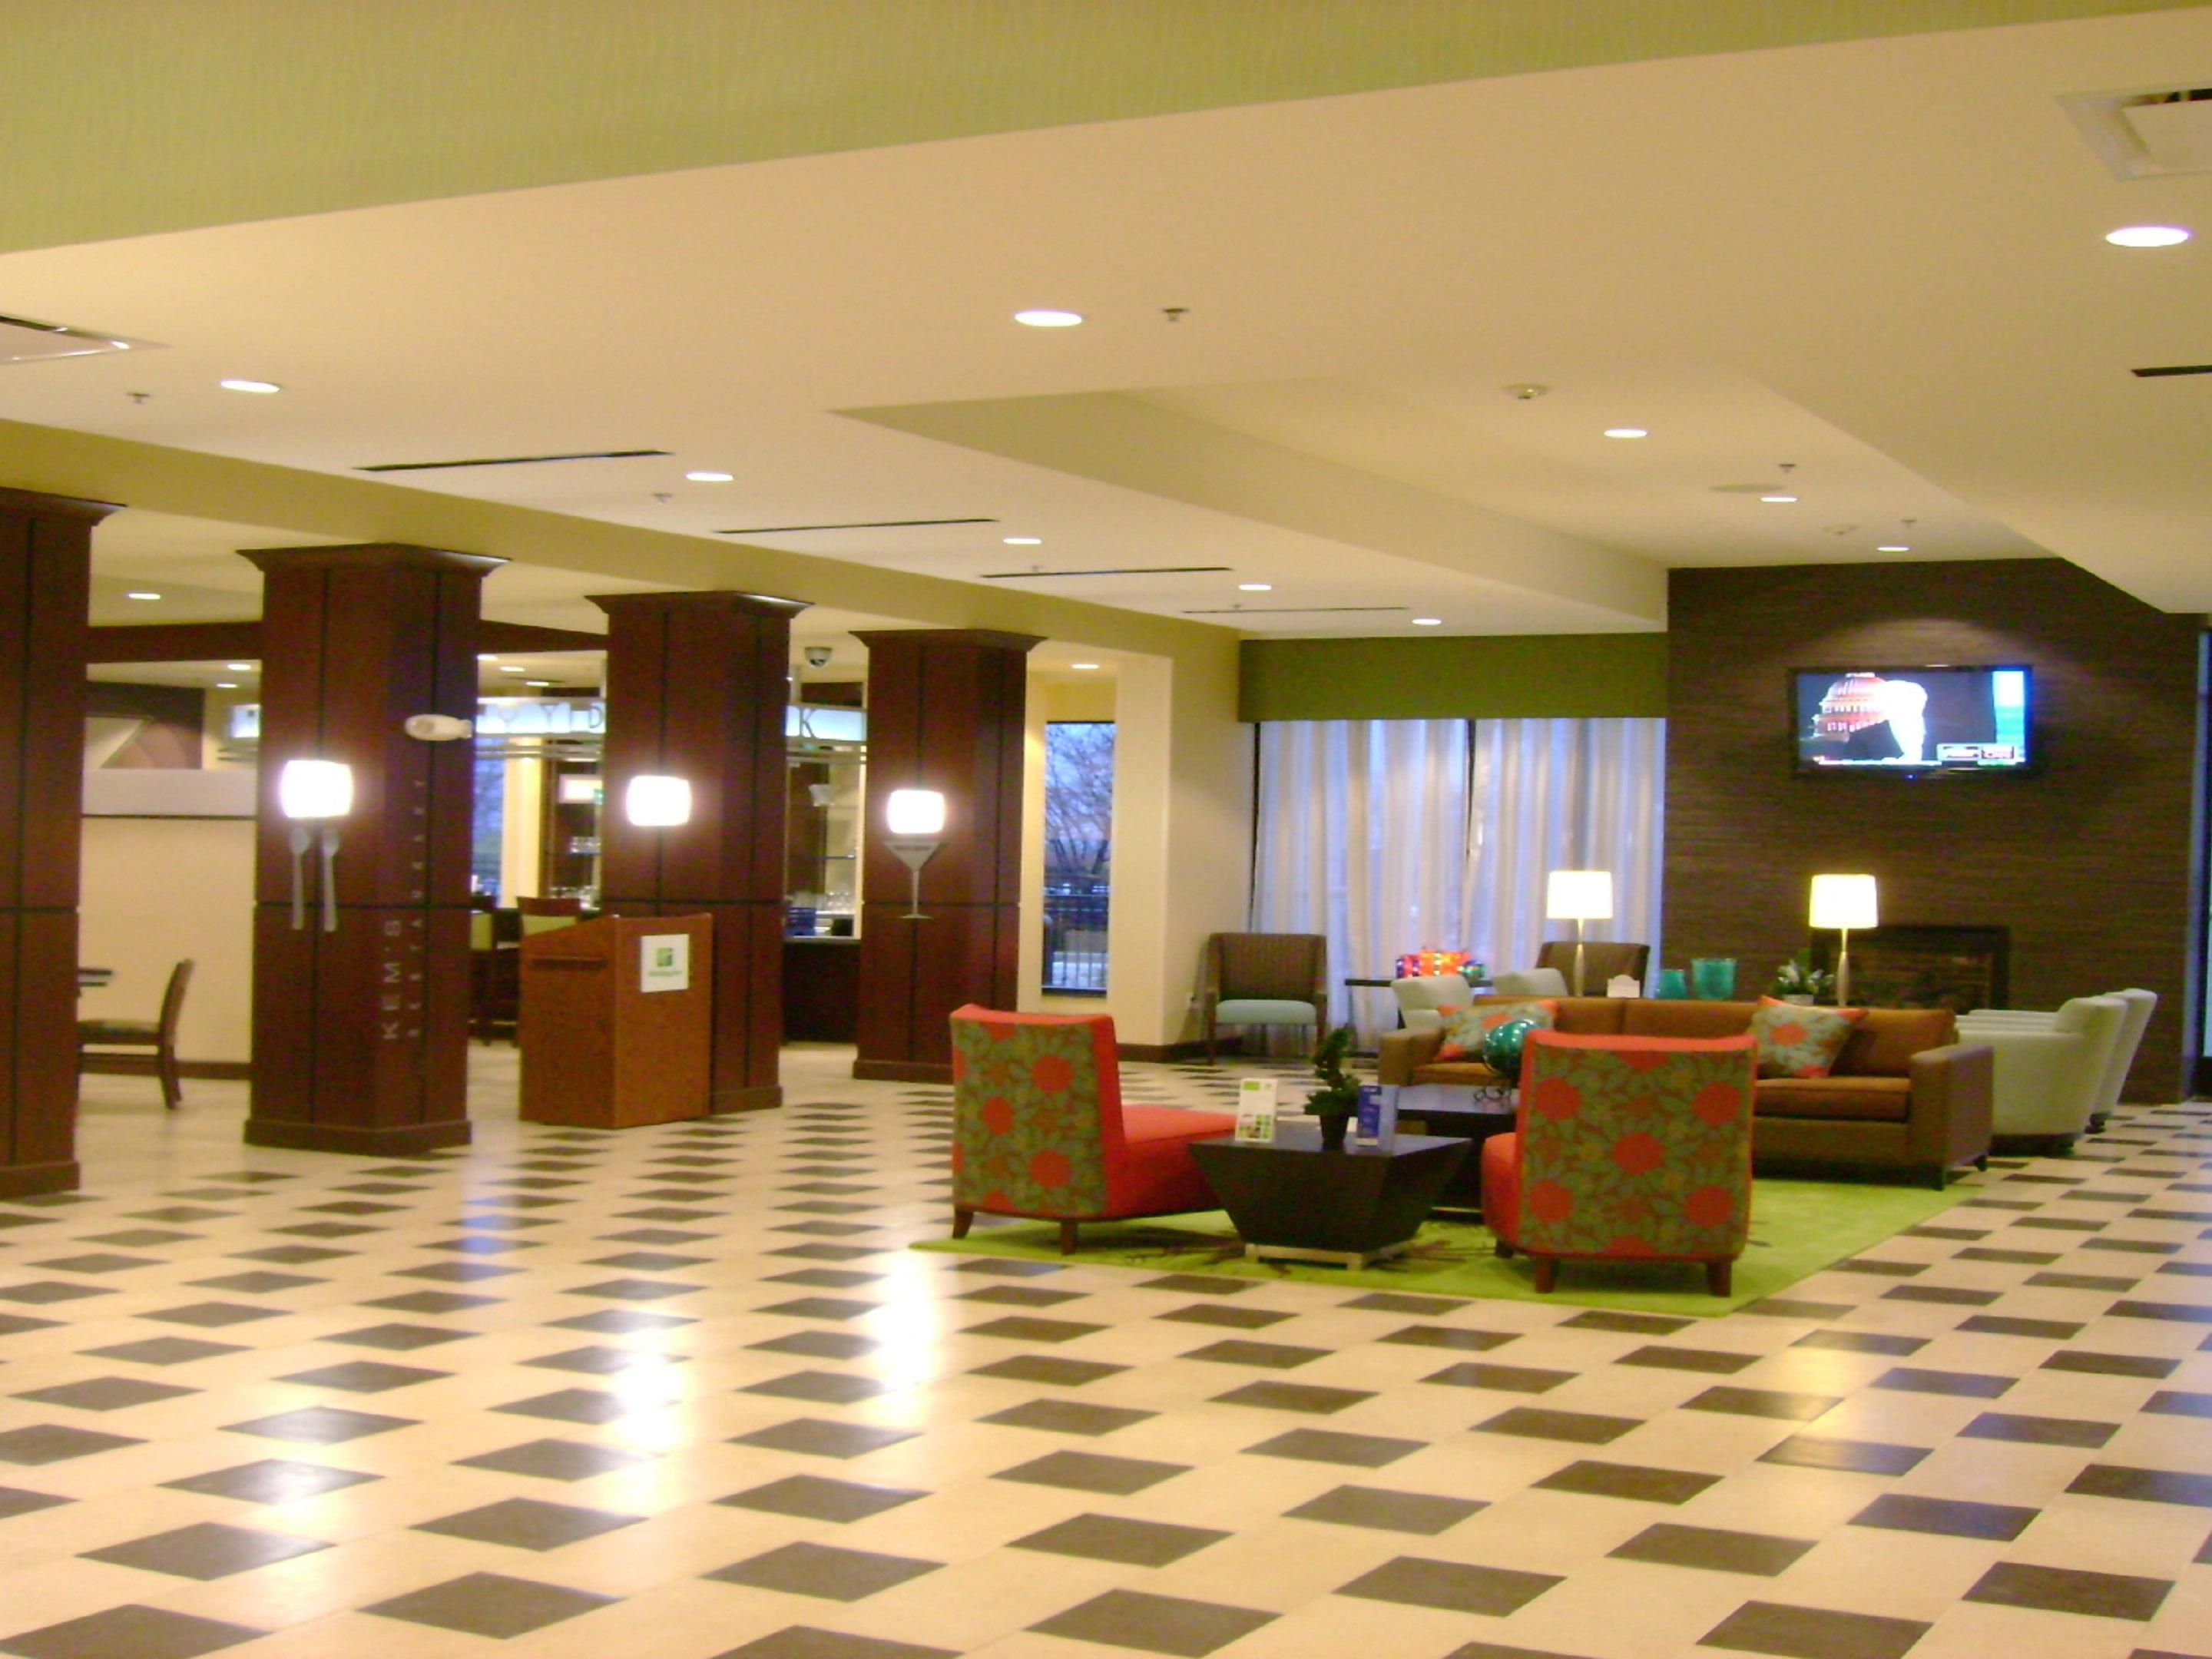 Relax in the Main Lobby- Enjoy friends, wifi, and television.